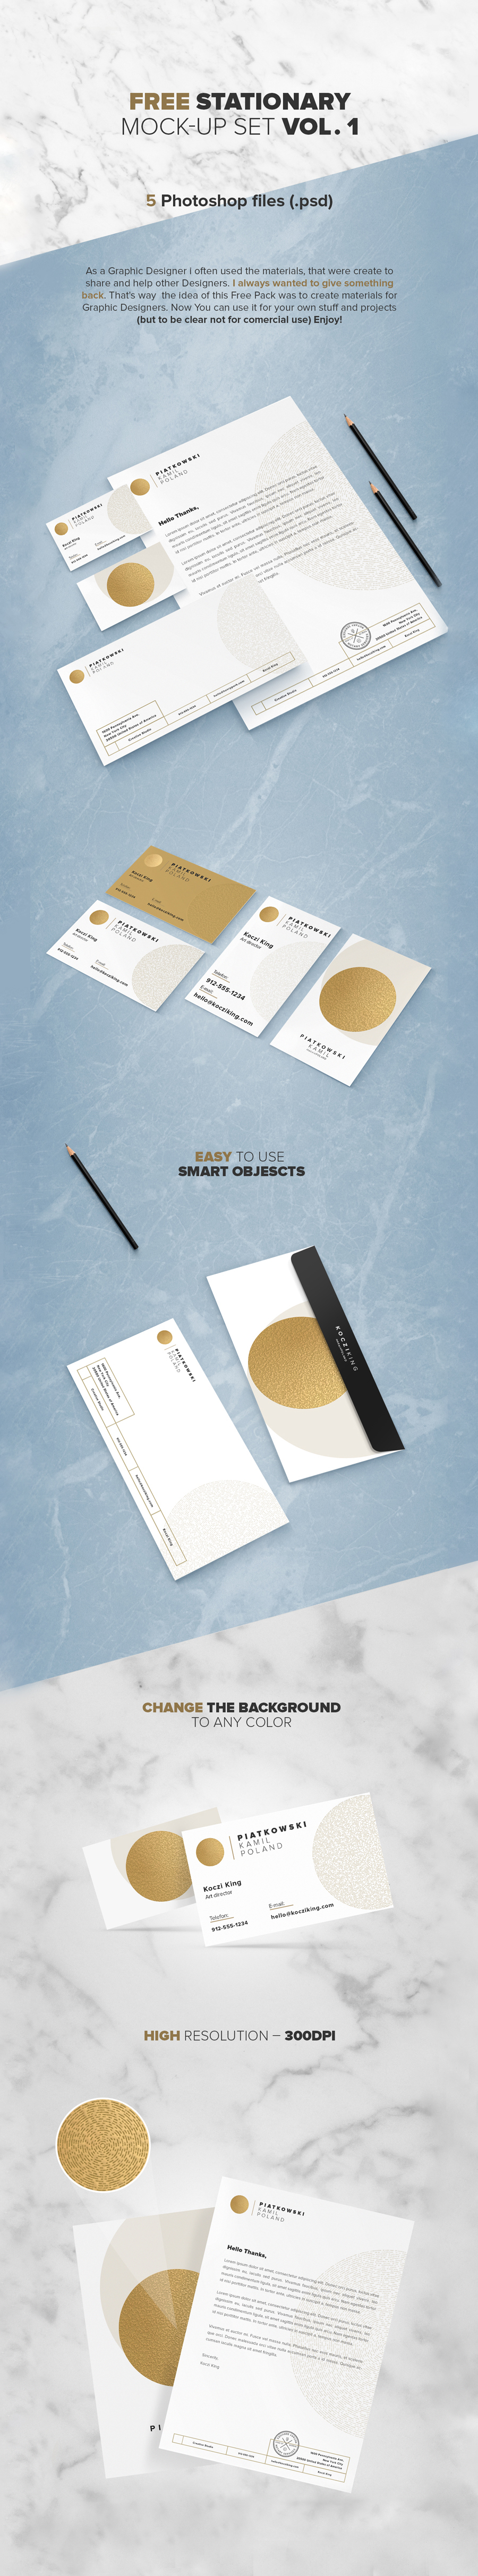 Free Stationary Mock-Up Set Vol.1